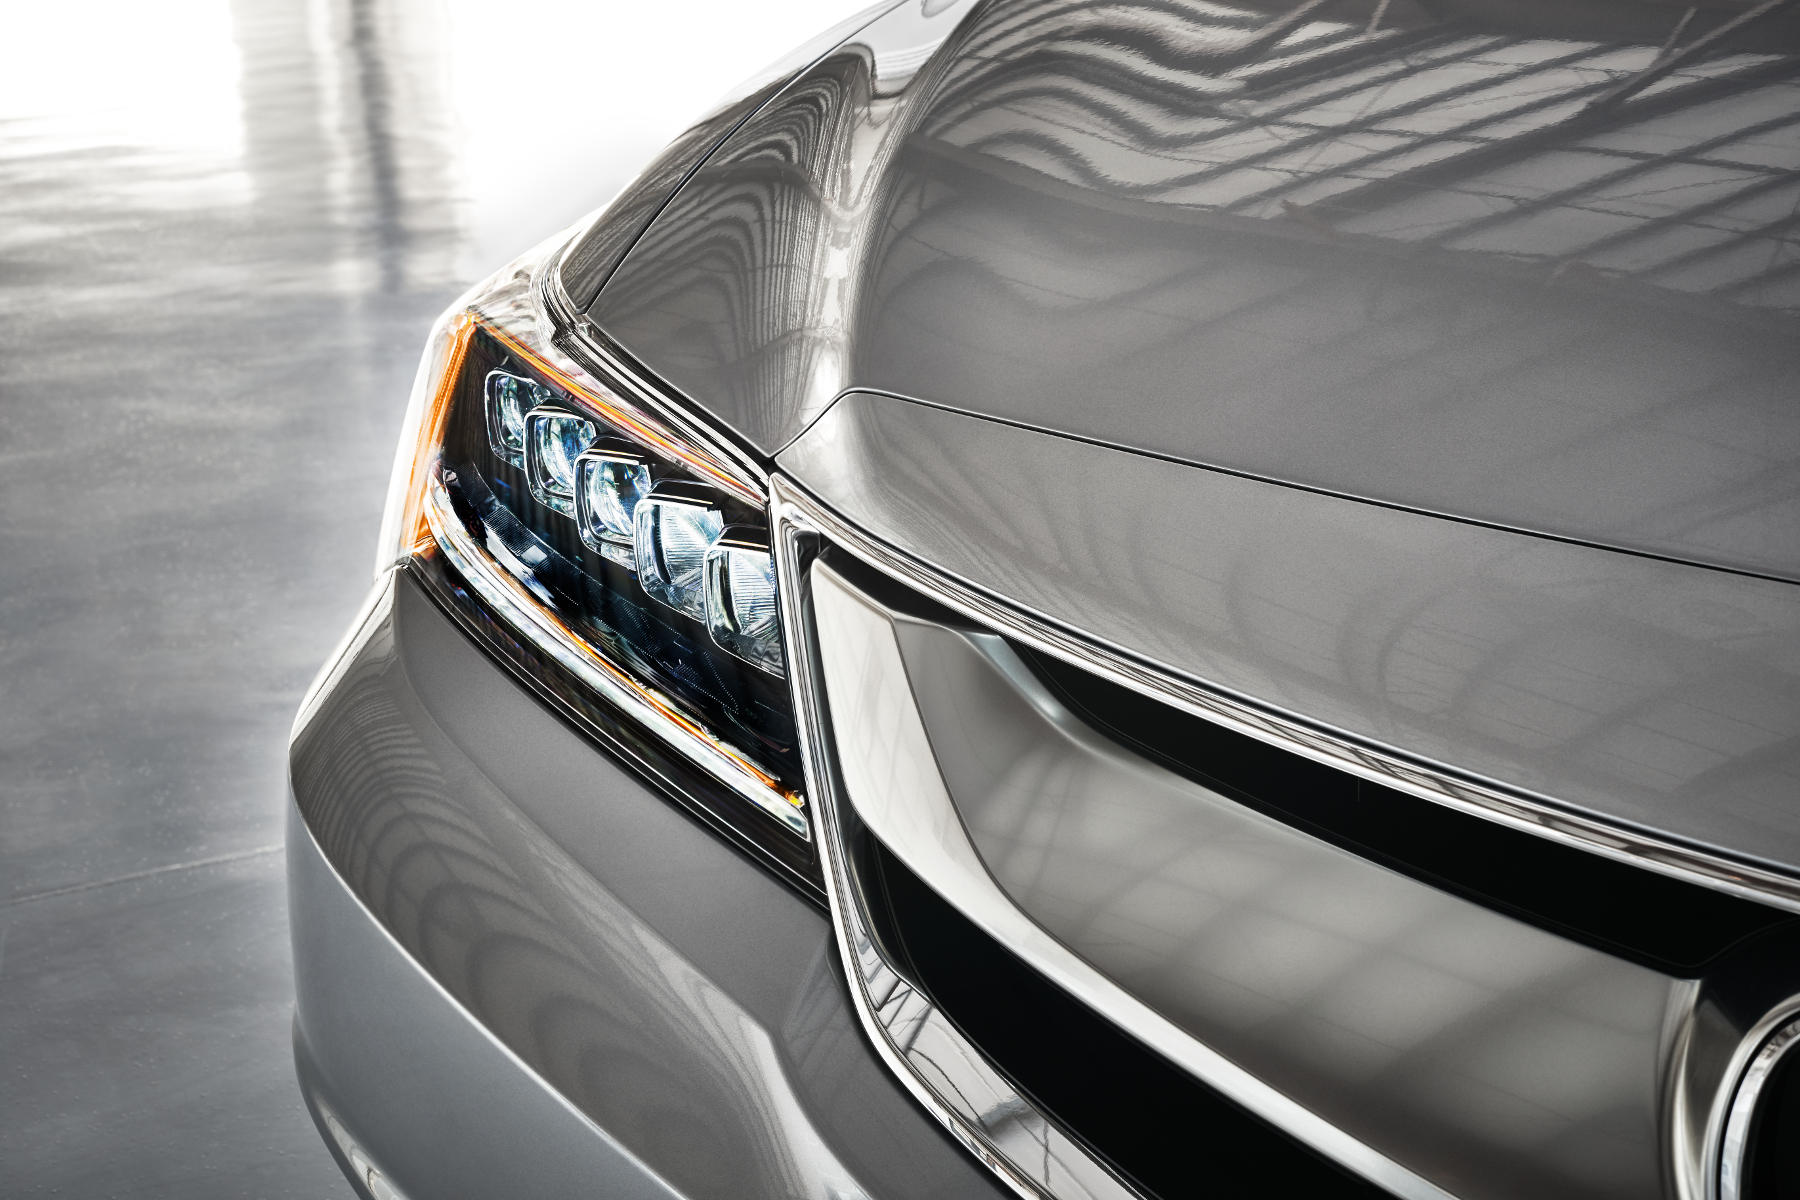 2016 ILX grille and headlight